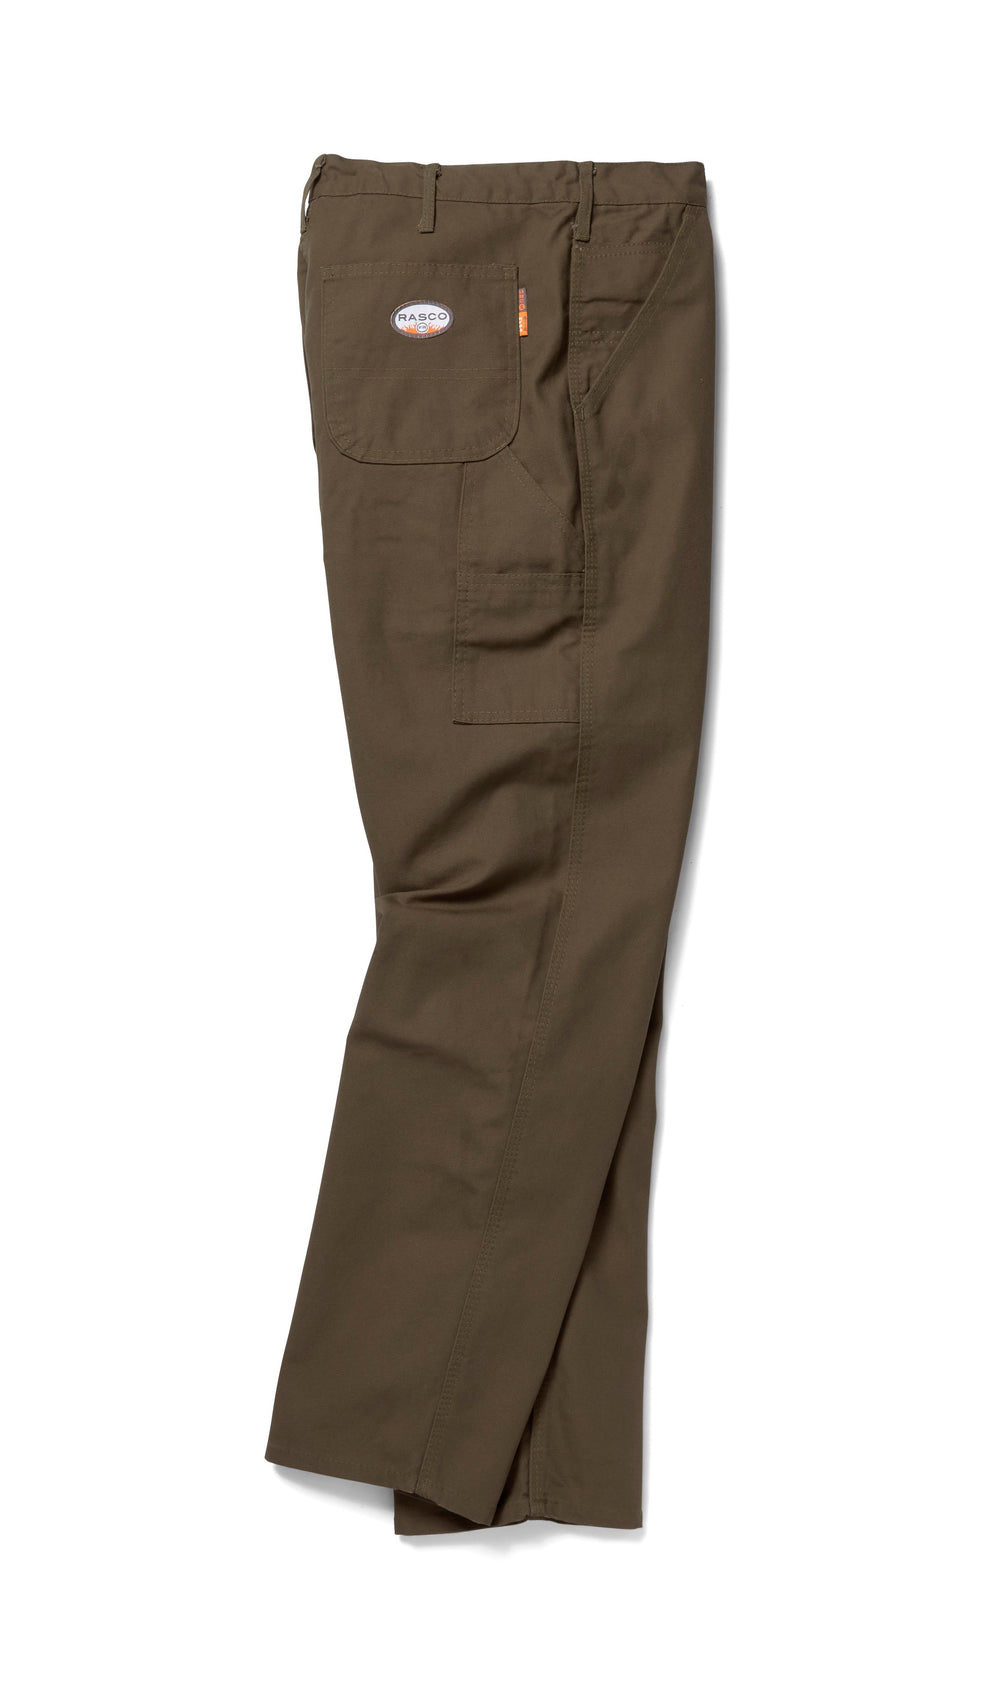 Rasco FR Green Duck Carpenter Pants - CGF1216